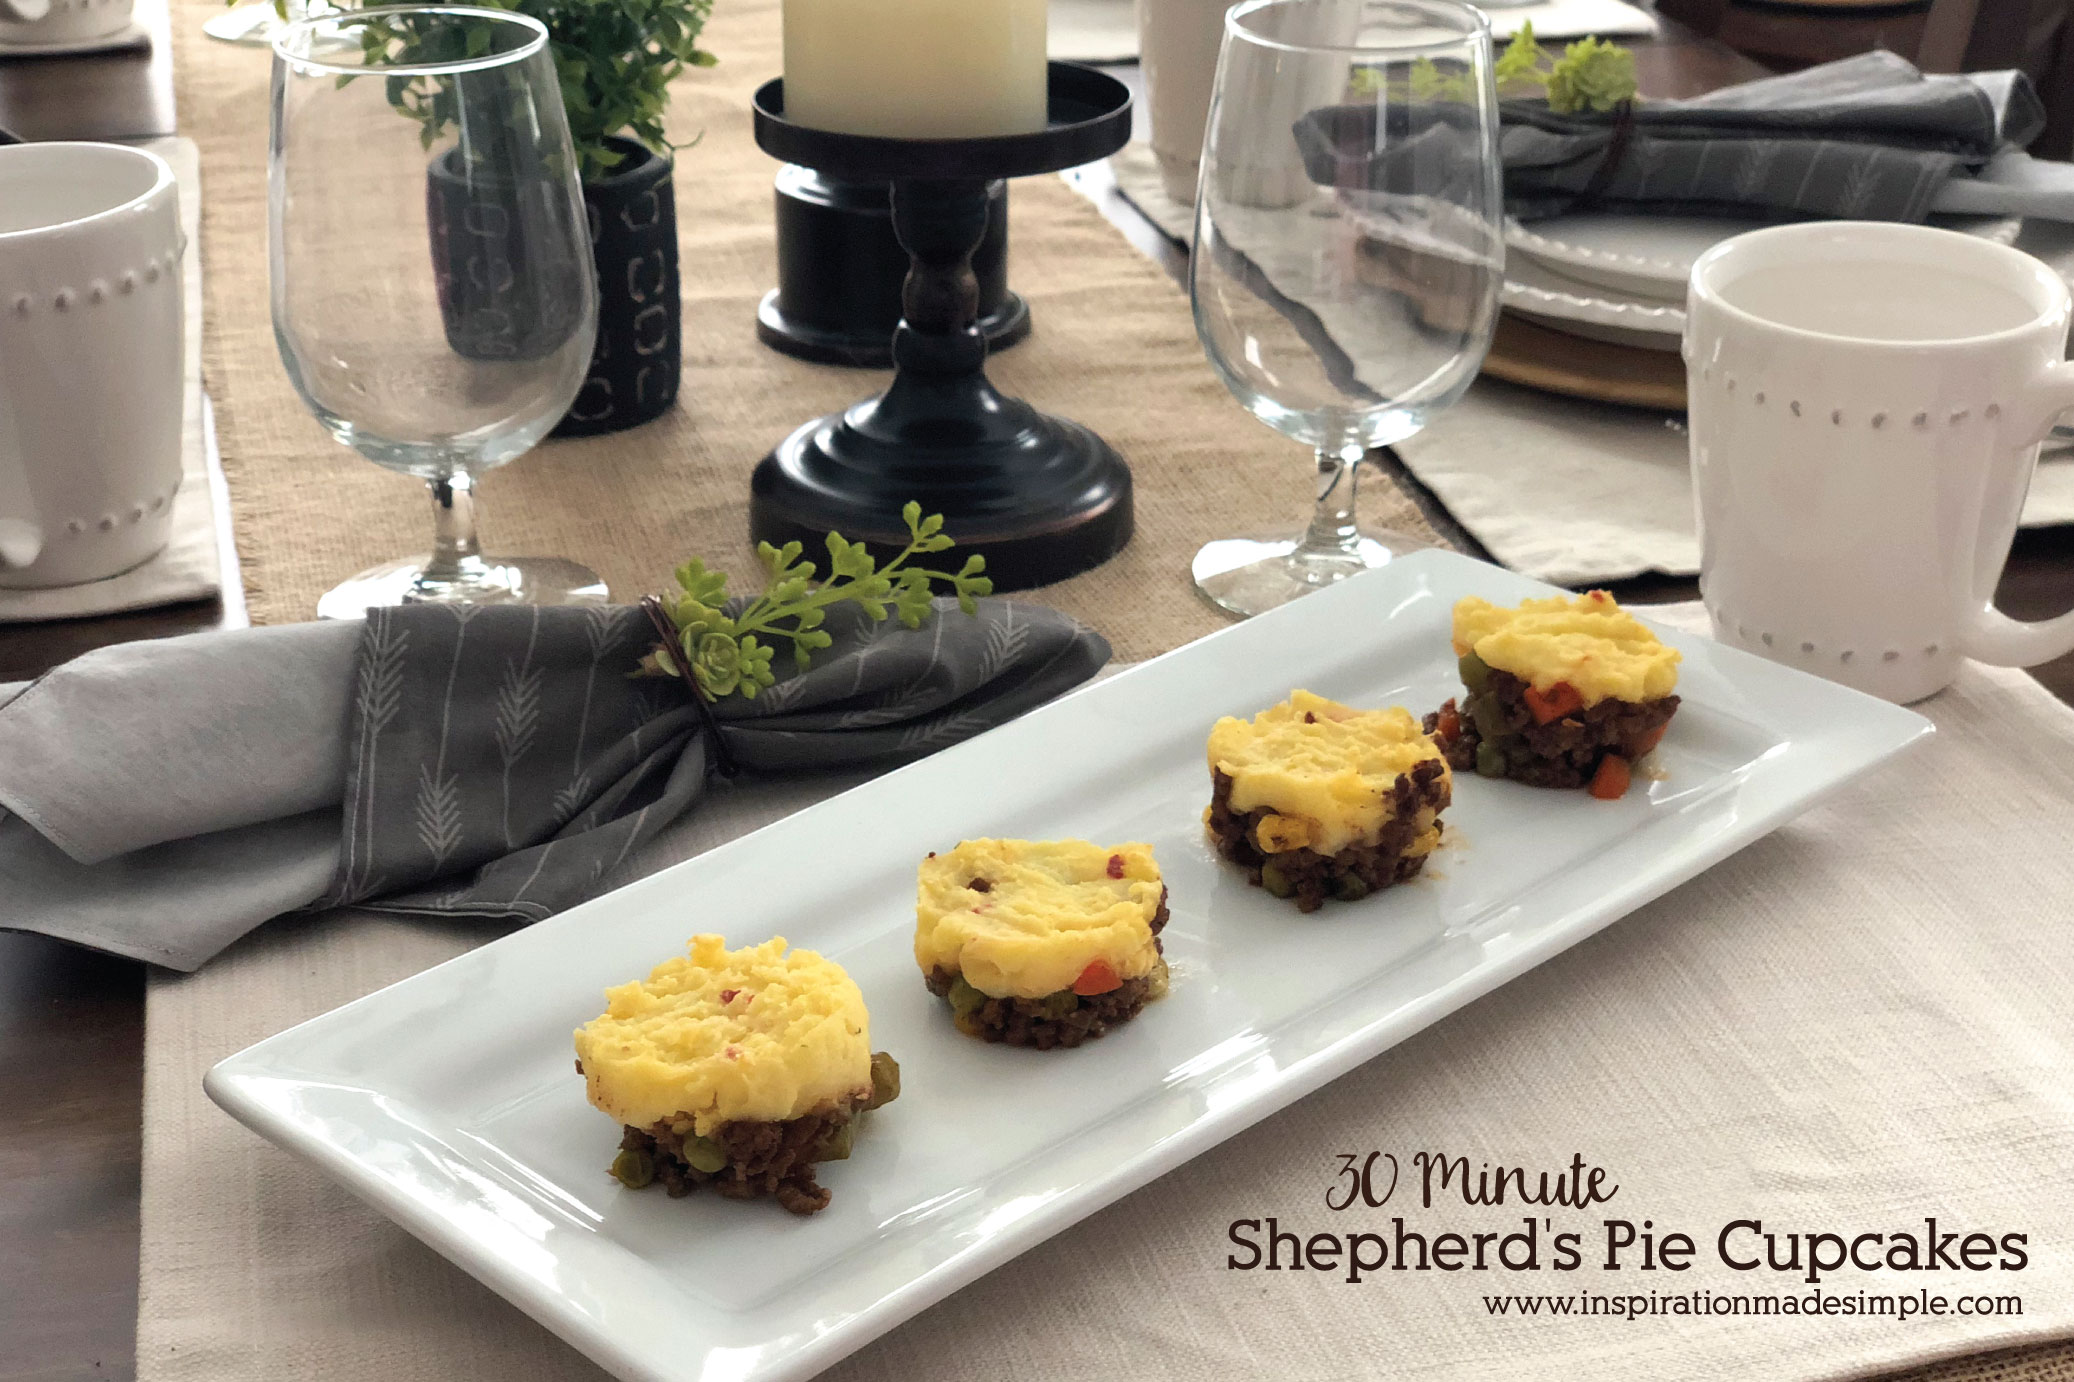 30 Minute Shepherd's Pie Cupcakes